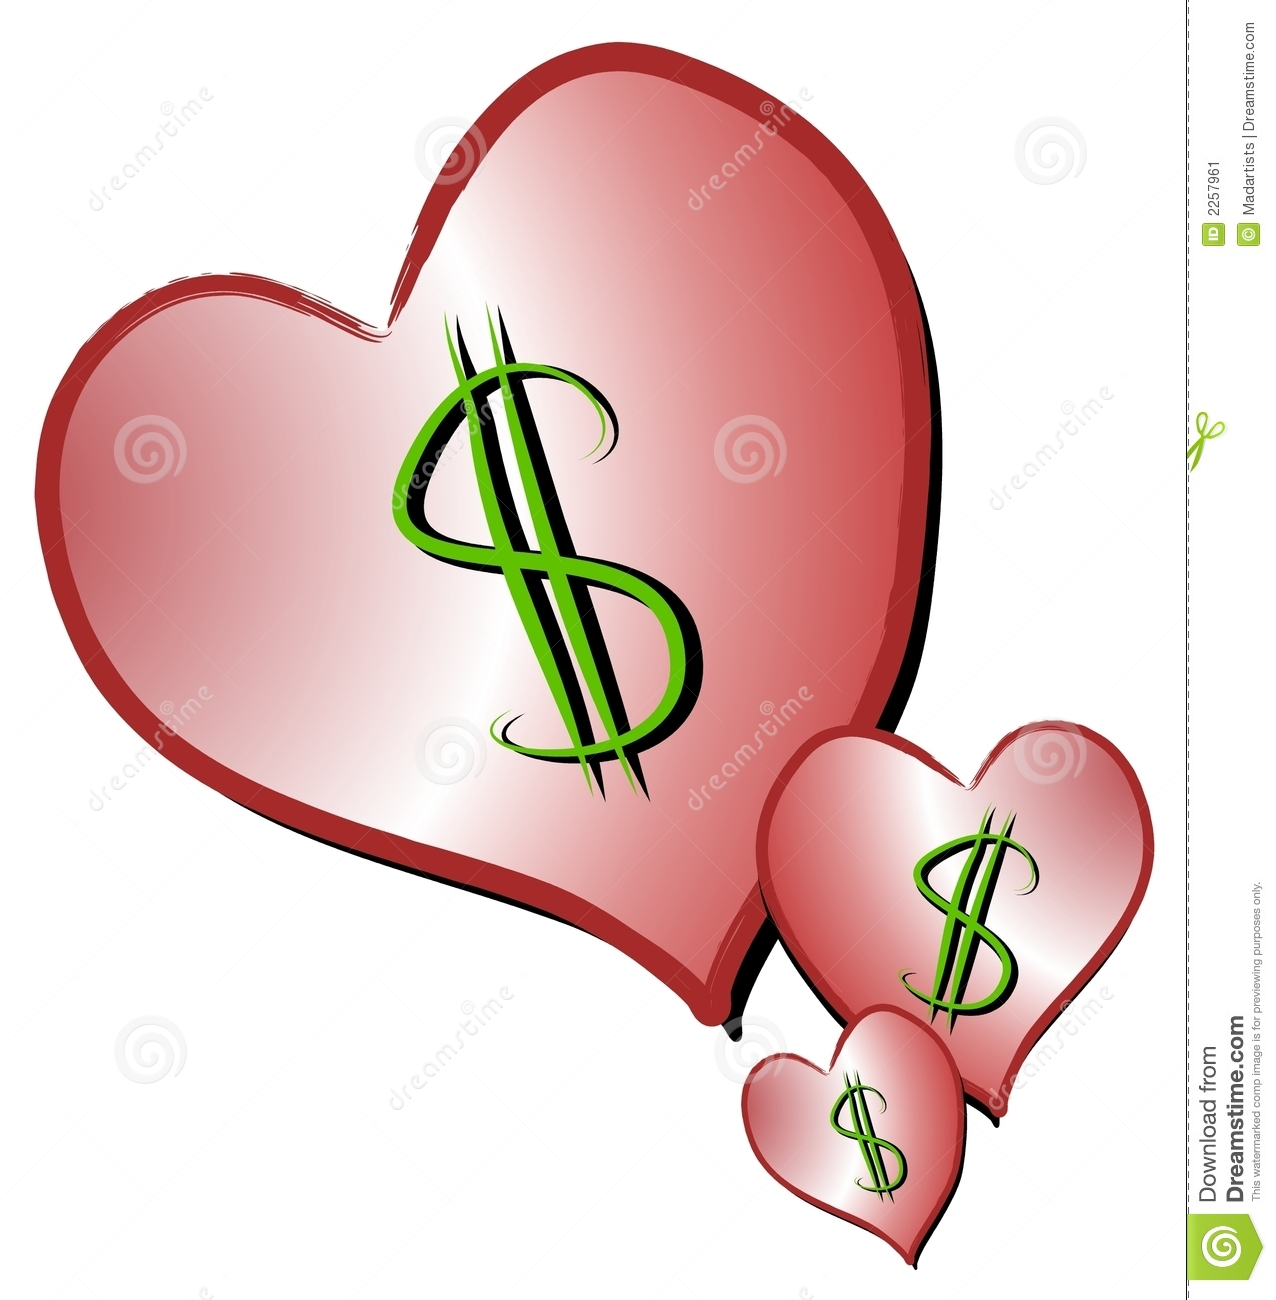 Dollar Signs On Hearts Clipart Stock Illustration